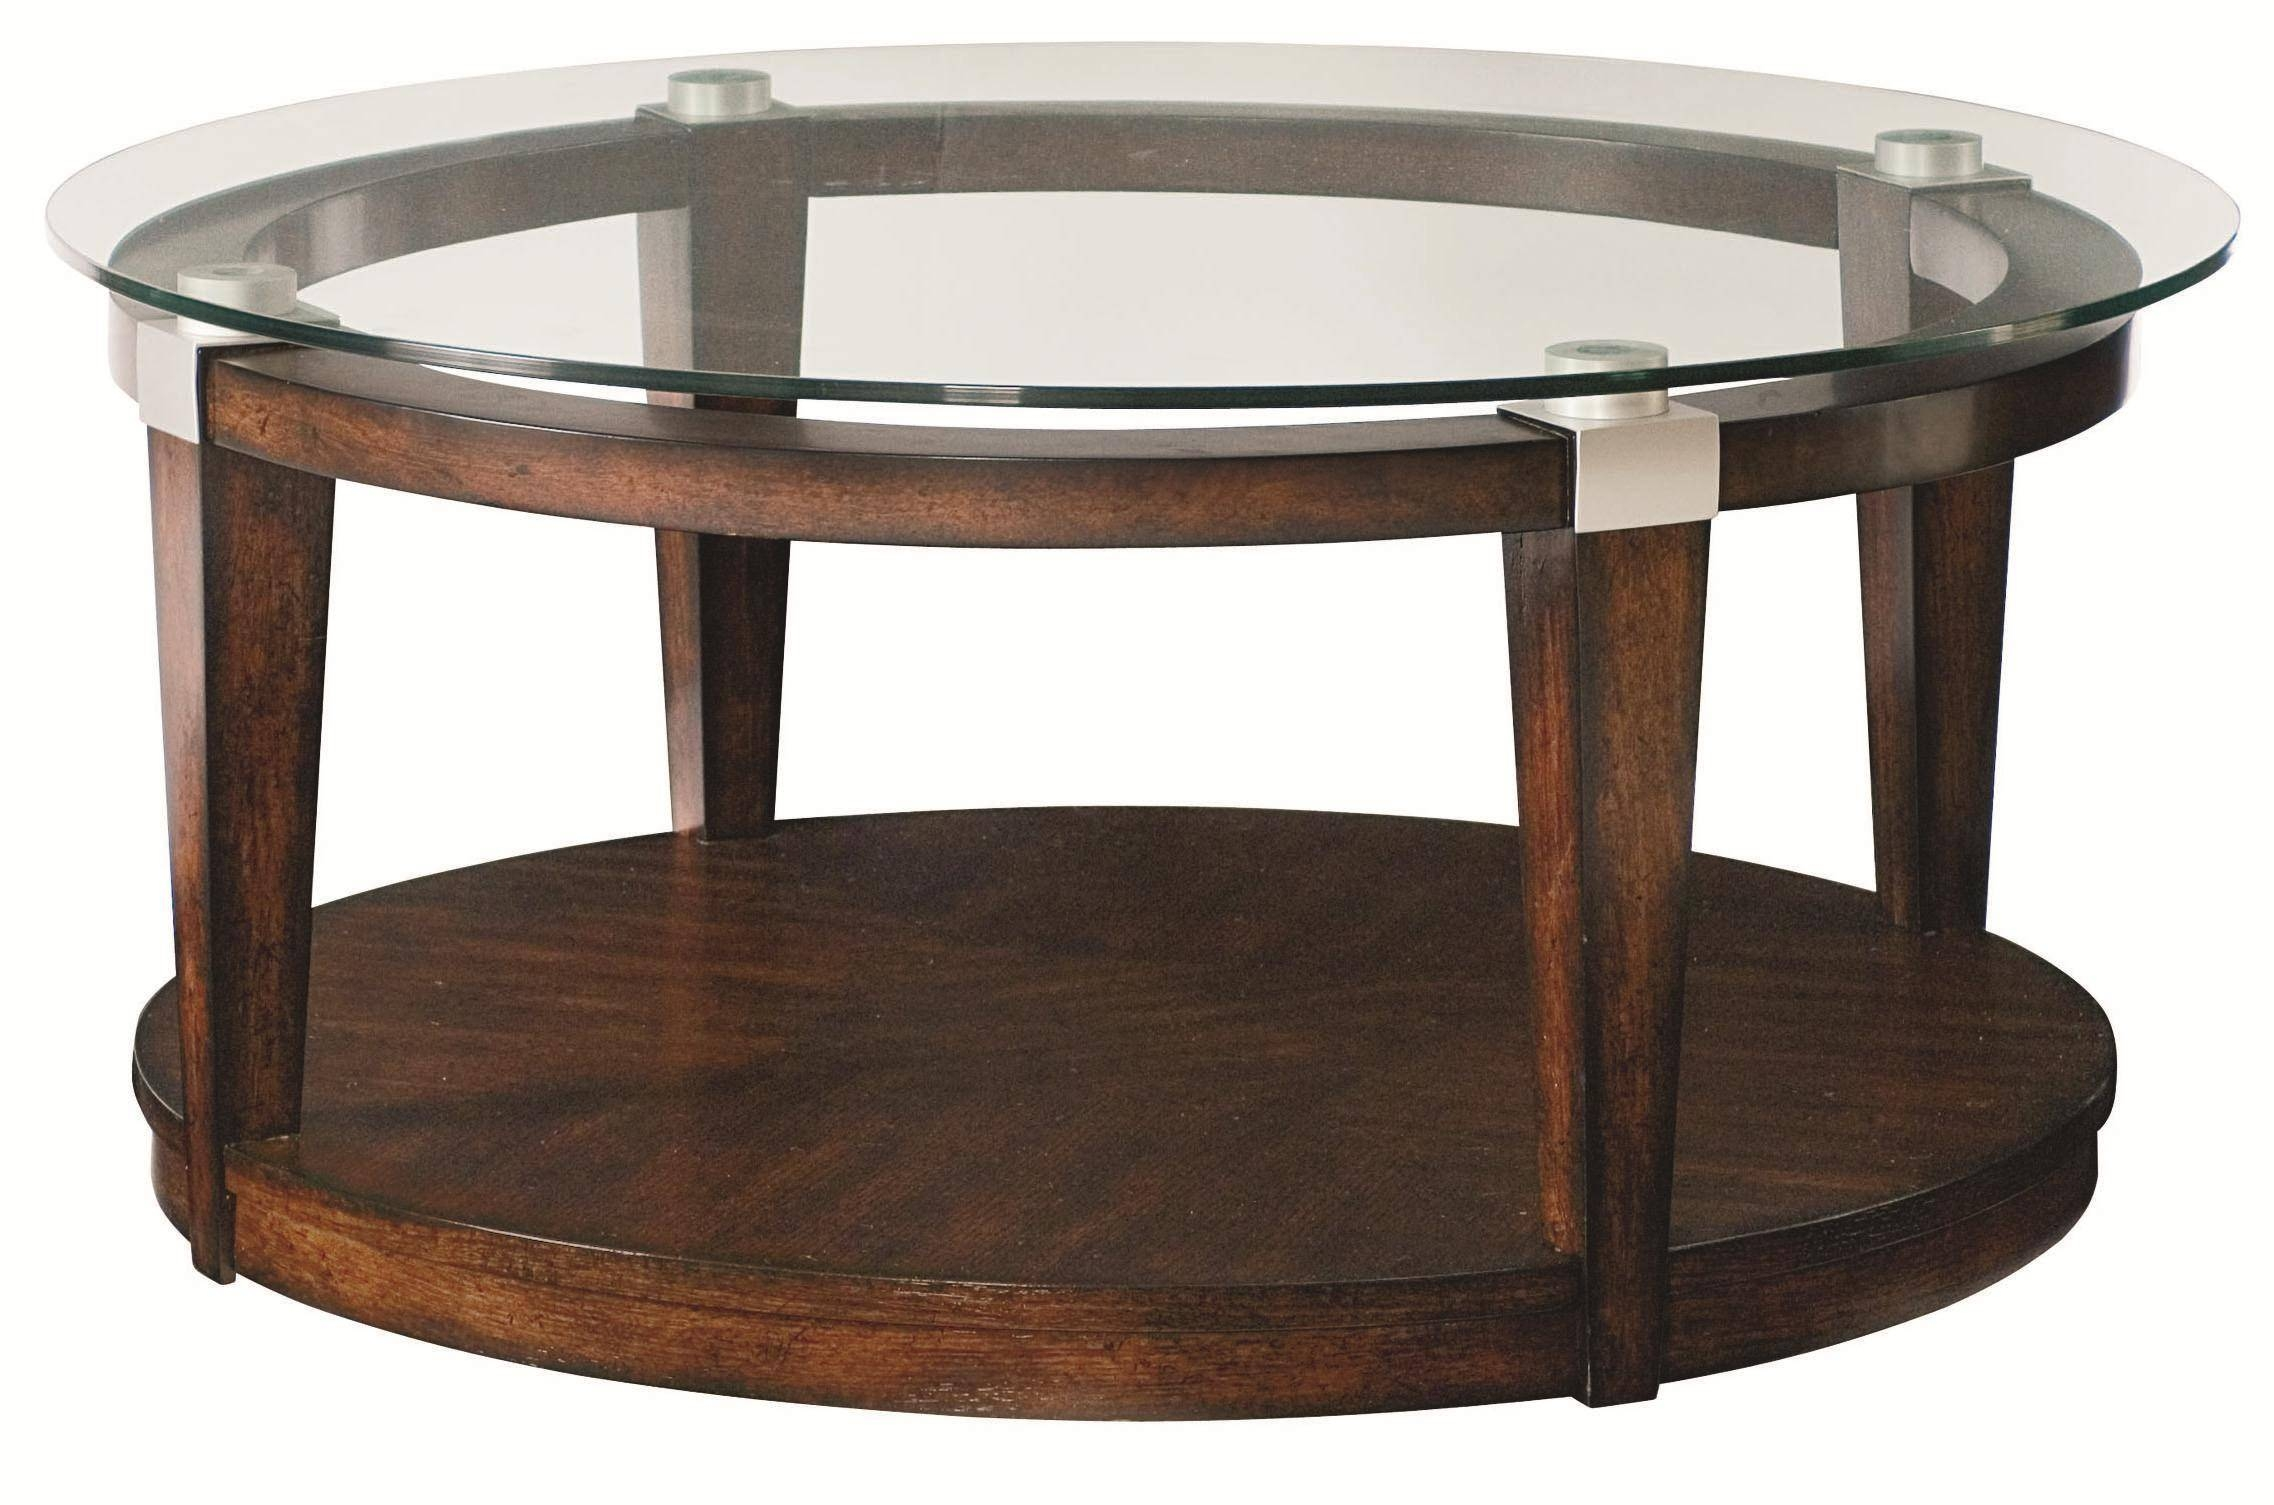 Coffee Table: Beautiful Rustic Round Coffee Table Design Ideas for Dark Wood Round Coffee Tables (Image 8 of 30)